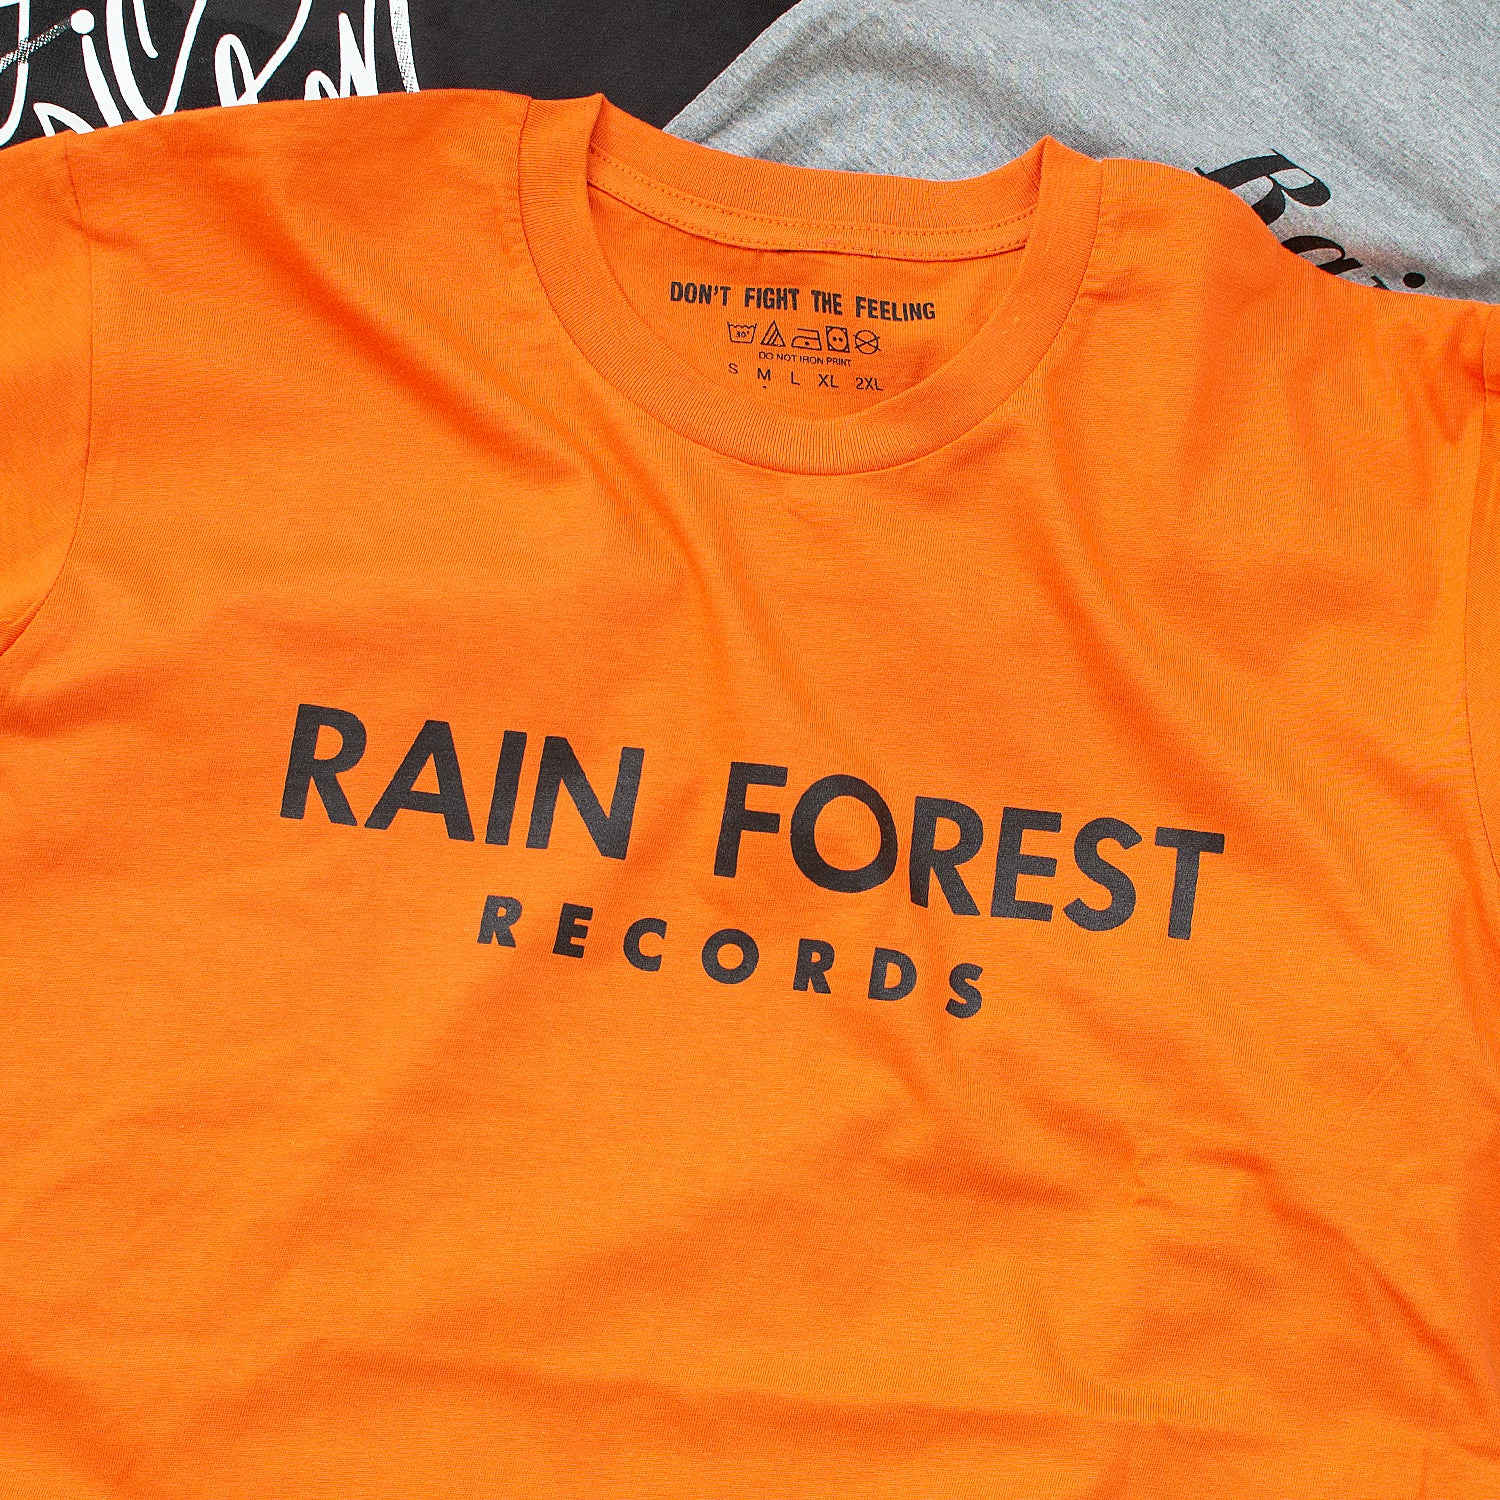 Image of Black Music Education & Rain Records Shirts Exclusive Offer 2-for-1